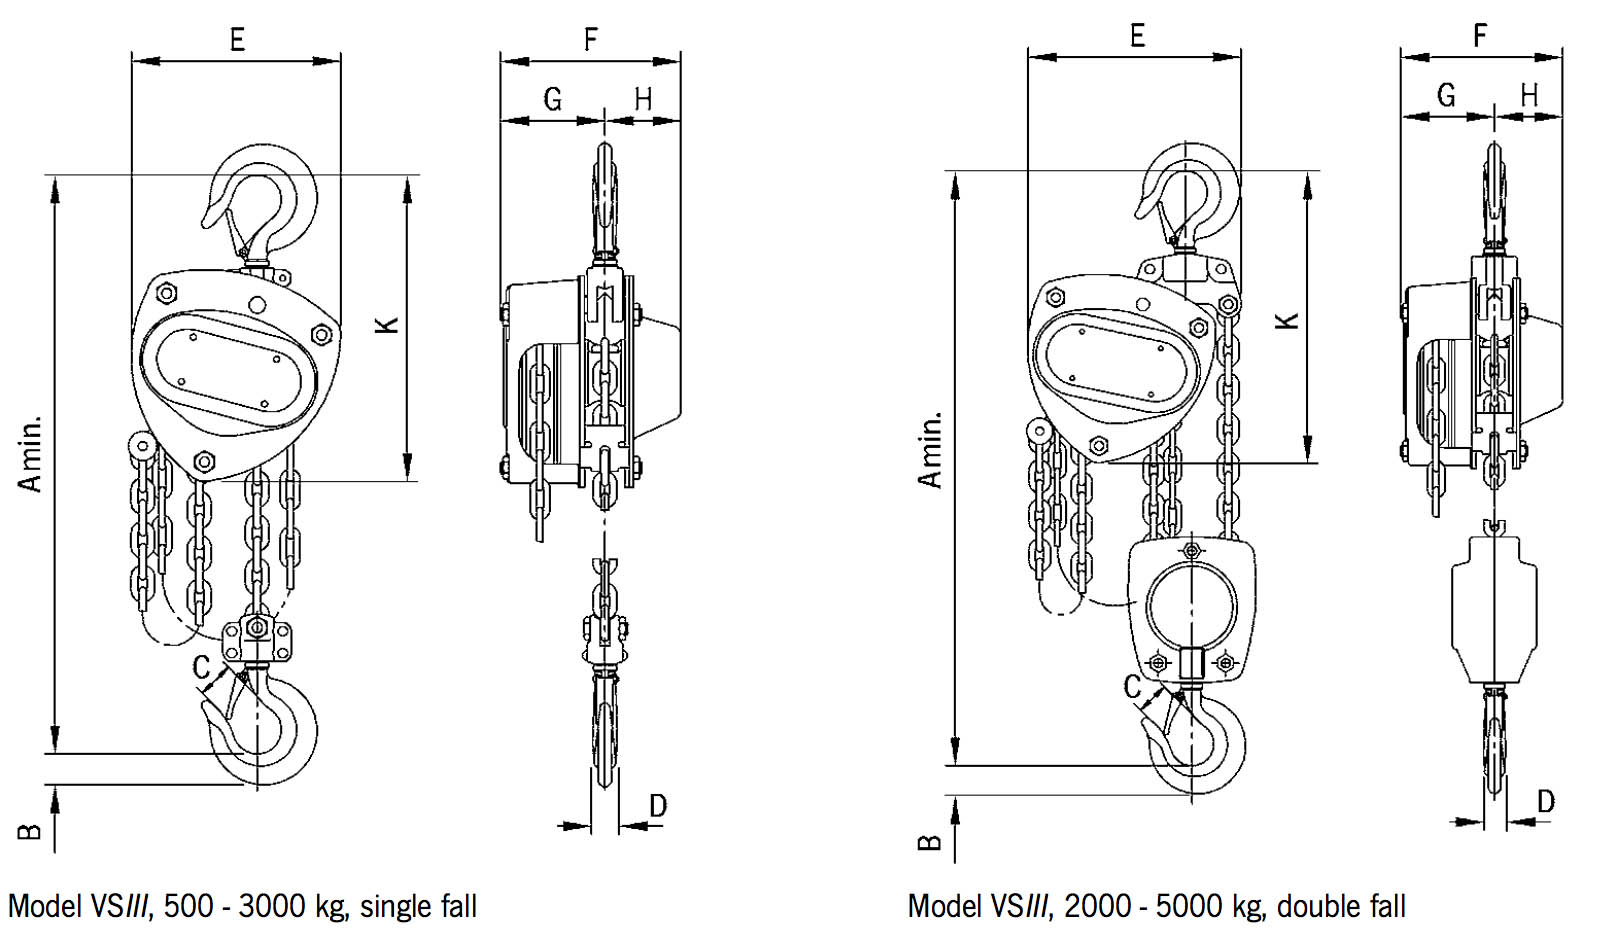 Yale Hoist Wiring Diagram And Engine Coffing Motor Diagrams Also Telescopic Forklift Furthermore Pallet Lift Wire